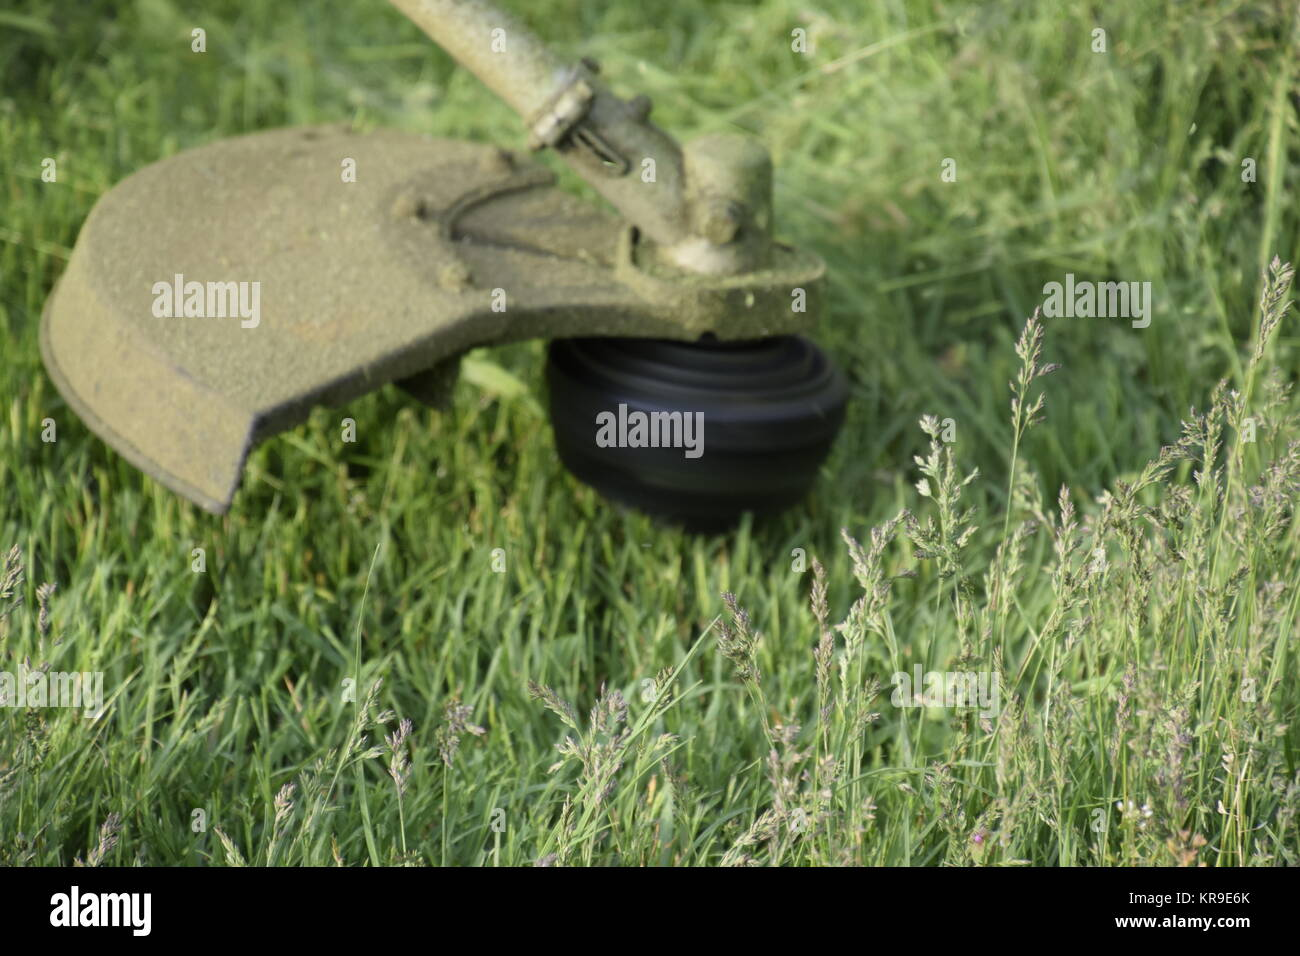 Grass trimmer line stock photos grass trimmer line stock for K9 fishing line